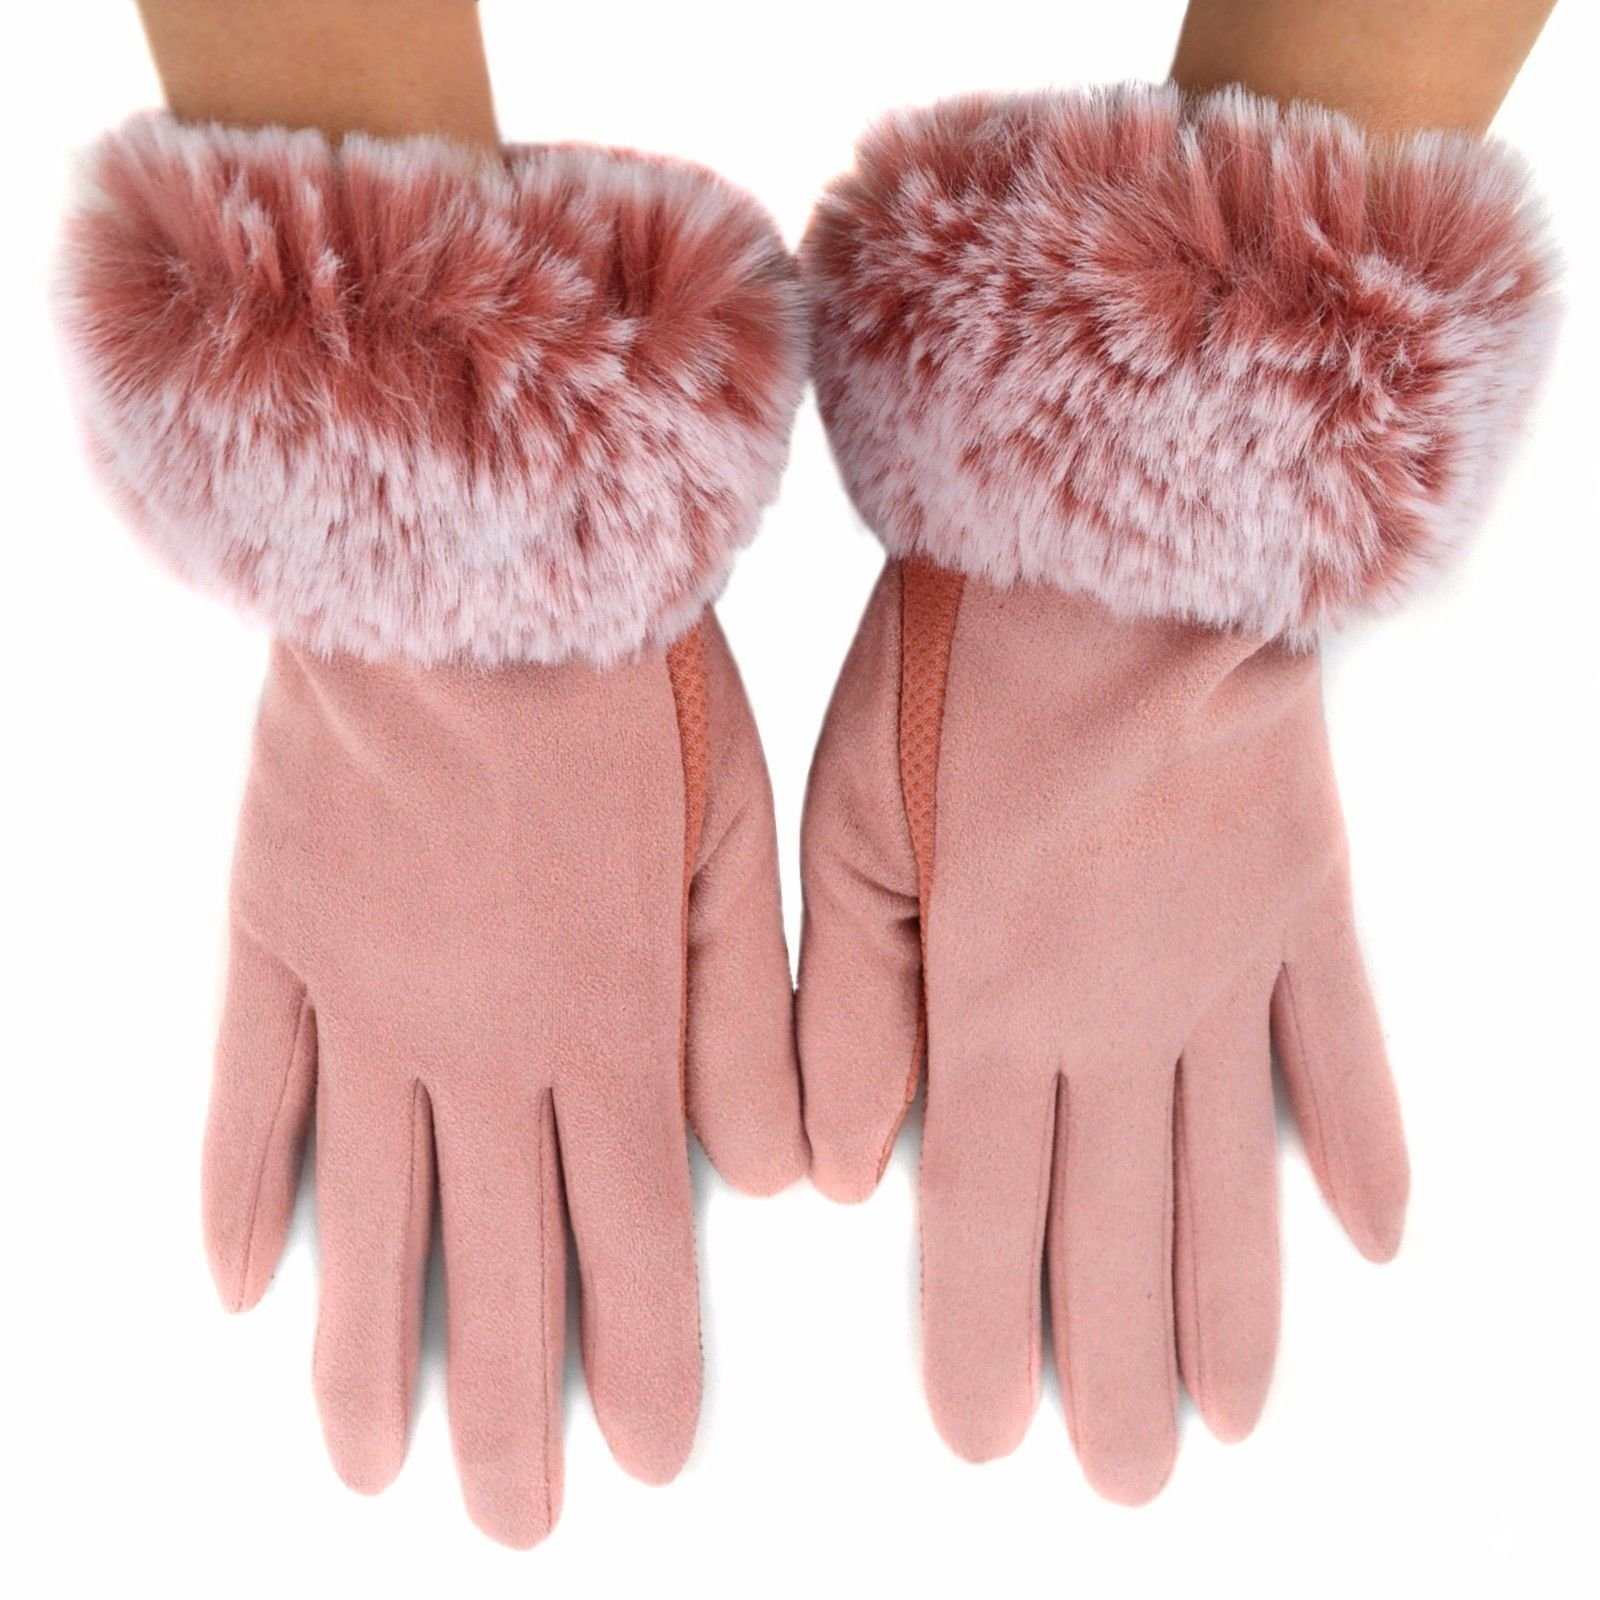 Women-039-s-Non-Slip-Grip-and-Smartphone-Accessible-Winter-Gloves-Touchscreen-Safe thumbnail 8